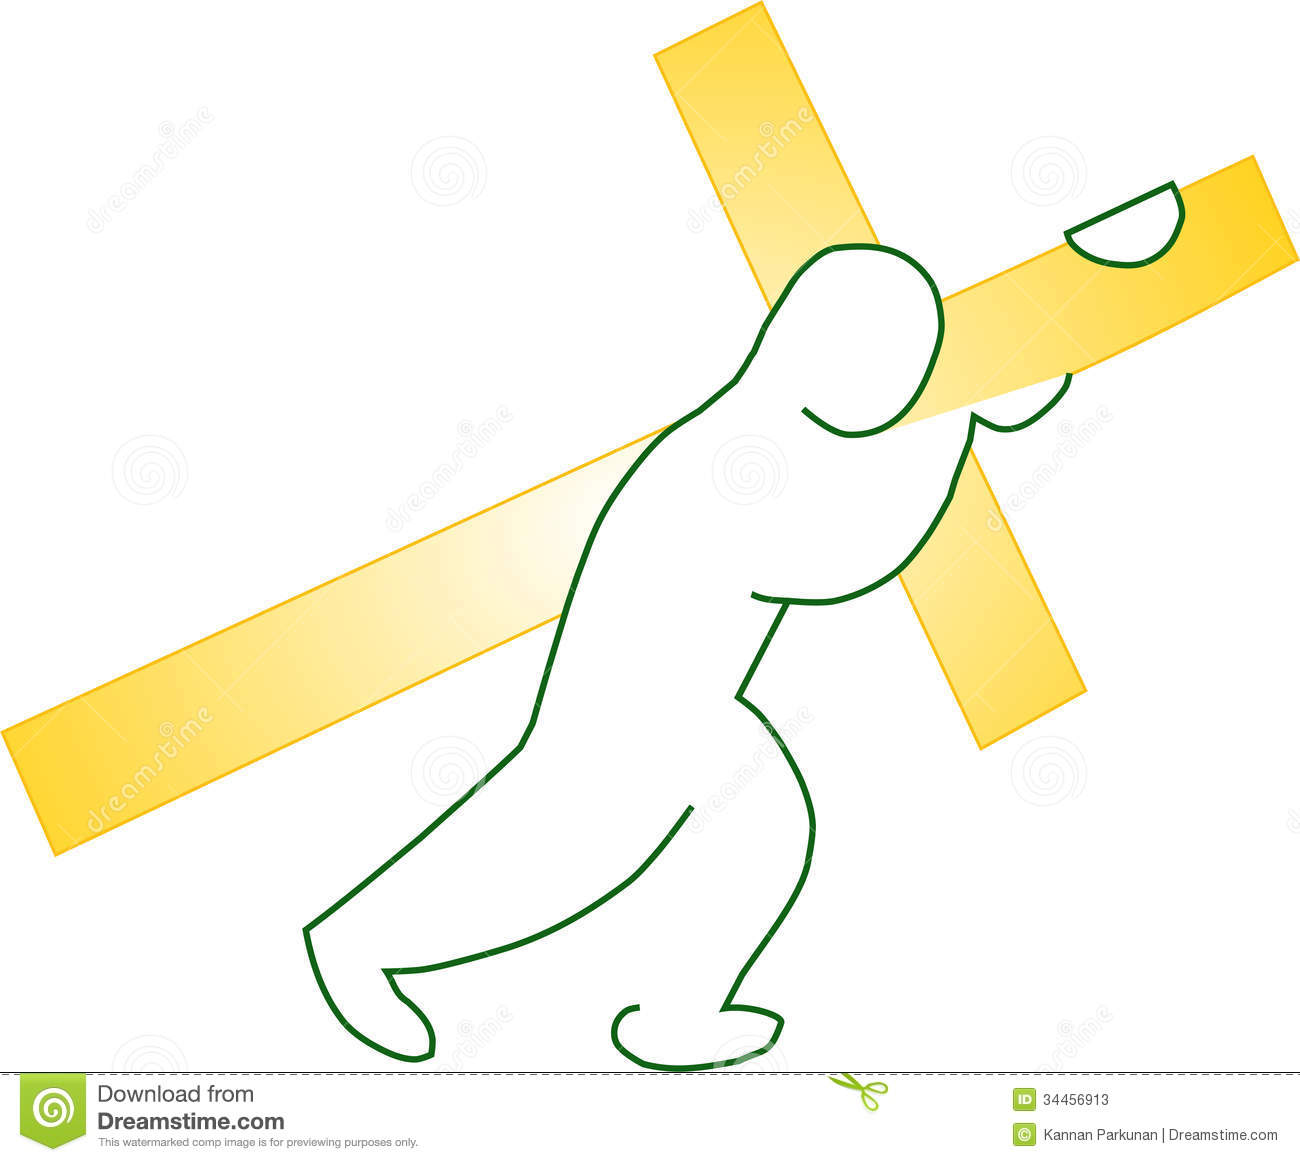 Jesus Christ On The Cross Clipart at GetDrawings.com ...